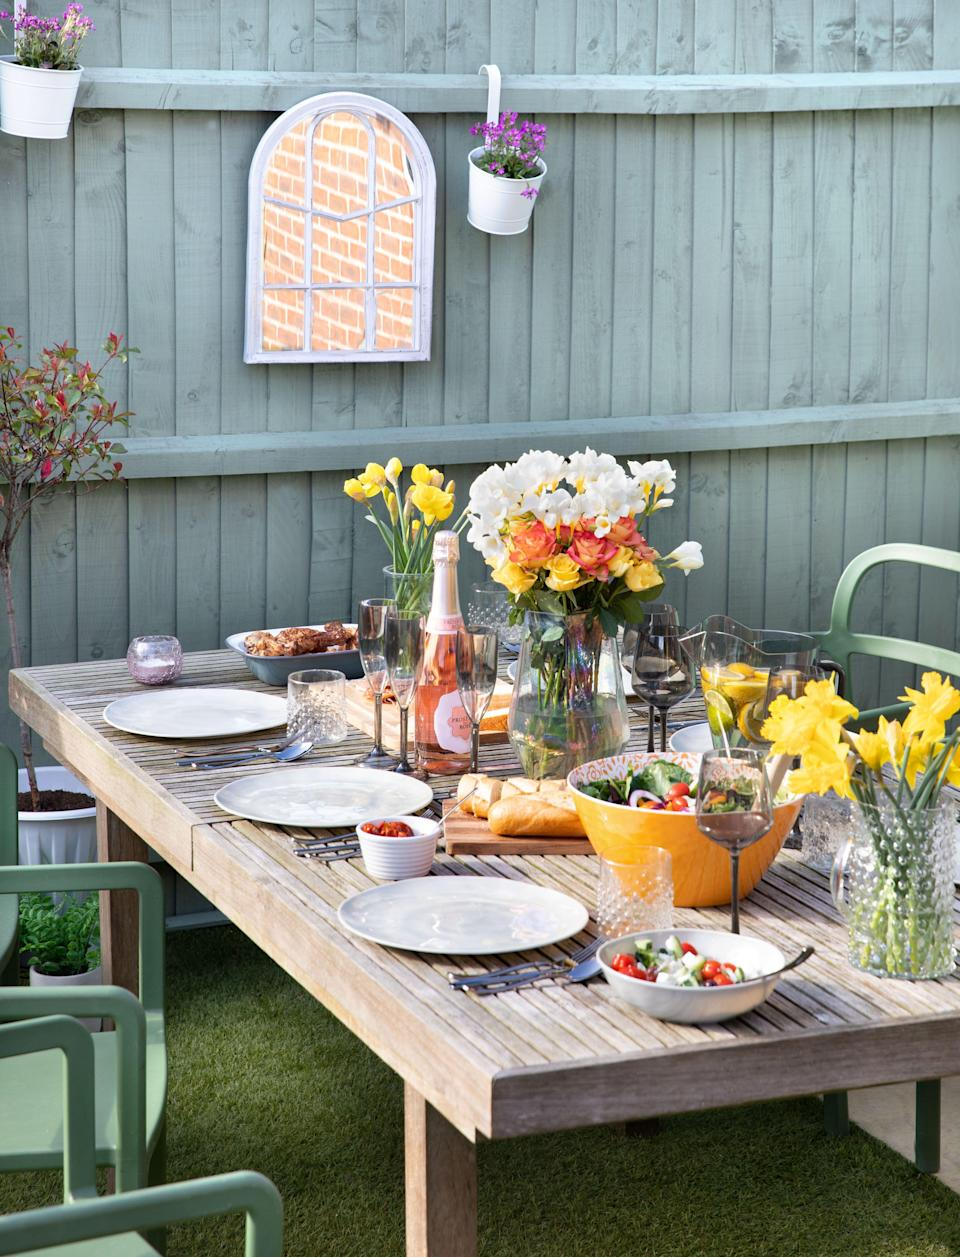 """<p><strong>Poundland has launched a new affordable outdoor range to help you smarten up your <a href=""""https://www.housebeautiful.com/uk/garden/a35900181/spring-summer-gardening-trends/"""" rel=""""nofollow noopener"""" target=""""_blank"""" data-ylk=""""slk:garden"""" class=""""link rapid-noclick-resp"""">garden</a> for less this summer. Starting from just £1, shoppers can choose from garden accessories, dining essentials and useful </strong><strong>tools to help make maintaining the garden easy.<br></strong><br>Kevin Jones, Head of Outdoor Fun at <a href=""""https://www.poundland.co.uk/"""" rel=""""nofollow noopener"""" target=""""_blank"""" data-ylk=""""slk:Poundland"""" class=""""link rapid-noclick-resp"""">Poundland</a>, says: '2021 will be a summer to remember for everyone, and our new outdoor ranges will help customers to create special alfresco memories – no matter how big or small and whatever their budget. We're really proud to be able to deliver our best outdoor and gardening range to date – in what has been a challenging year for everyone – so bring on the summer!'</p><p>Take a look at some of Poundland's highlights below...</p>"""